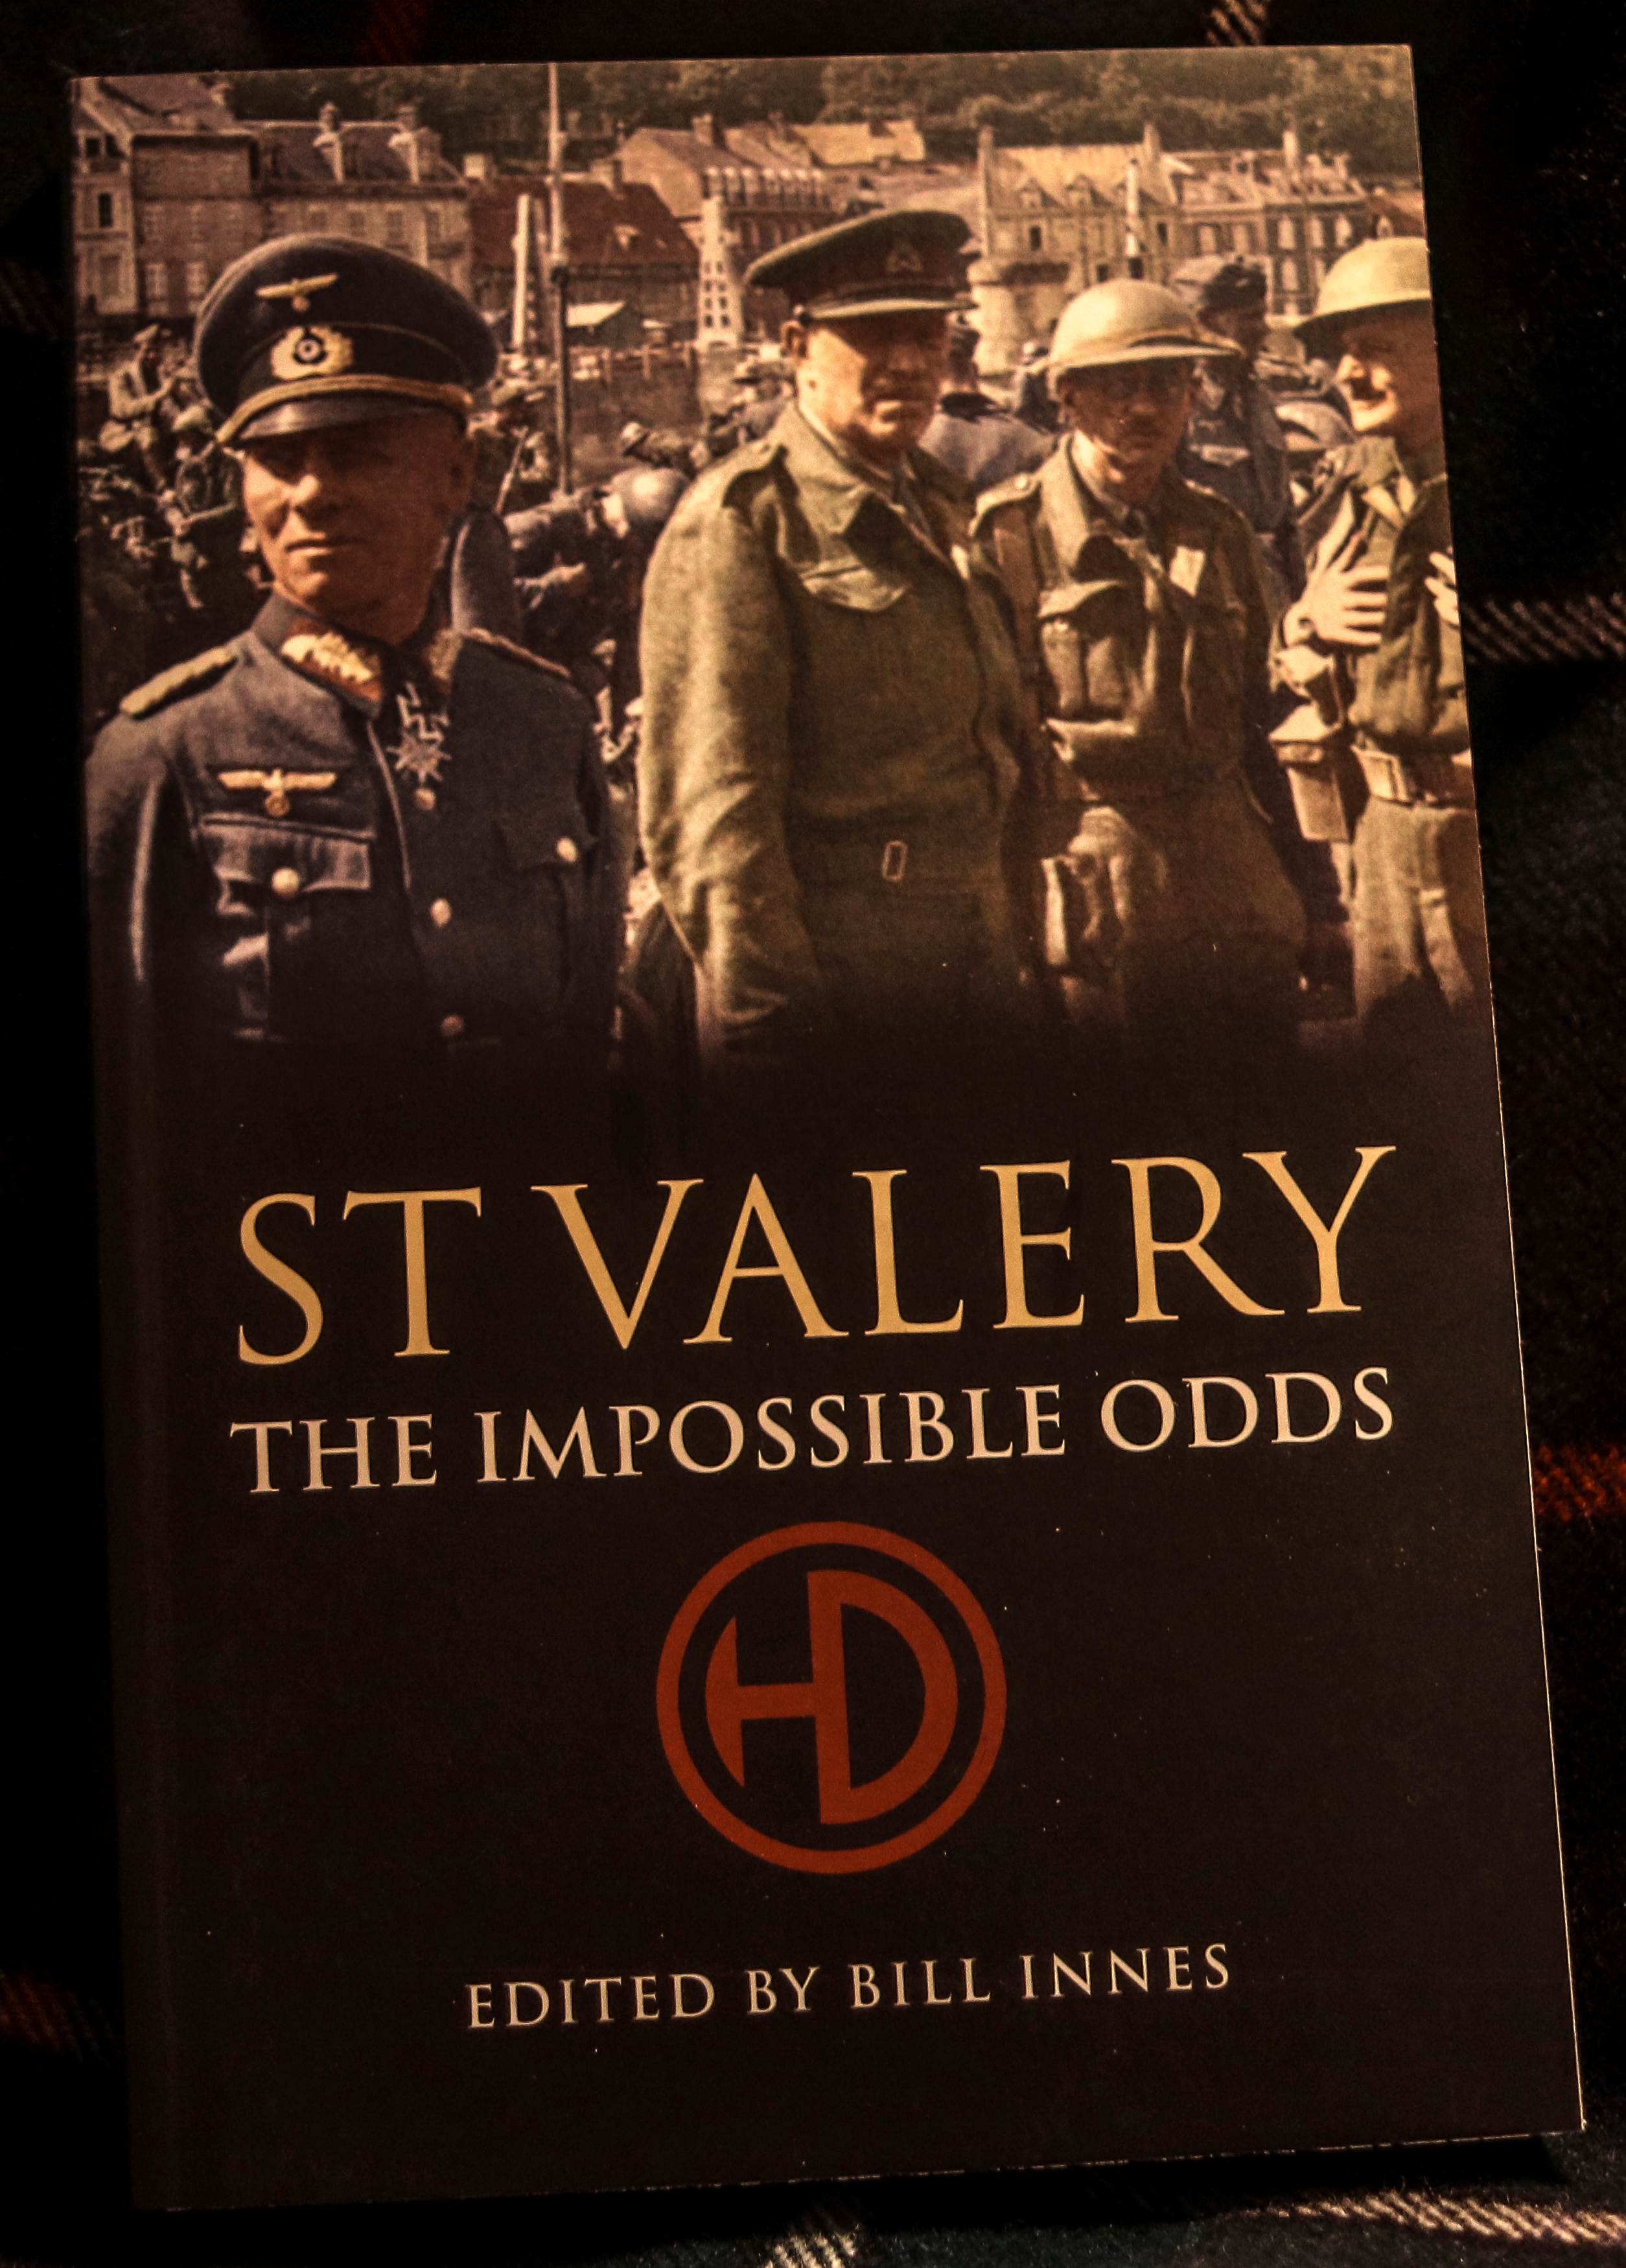 Book - ST VALERY THE IMPOSSIBLE ODDS